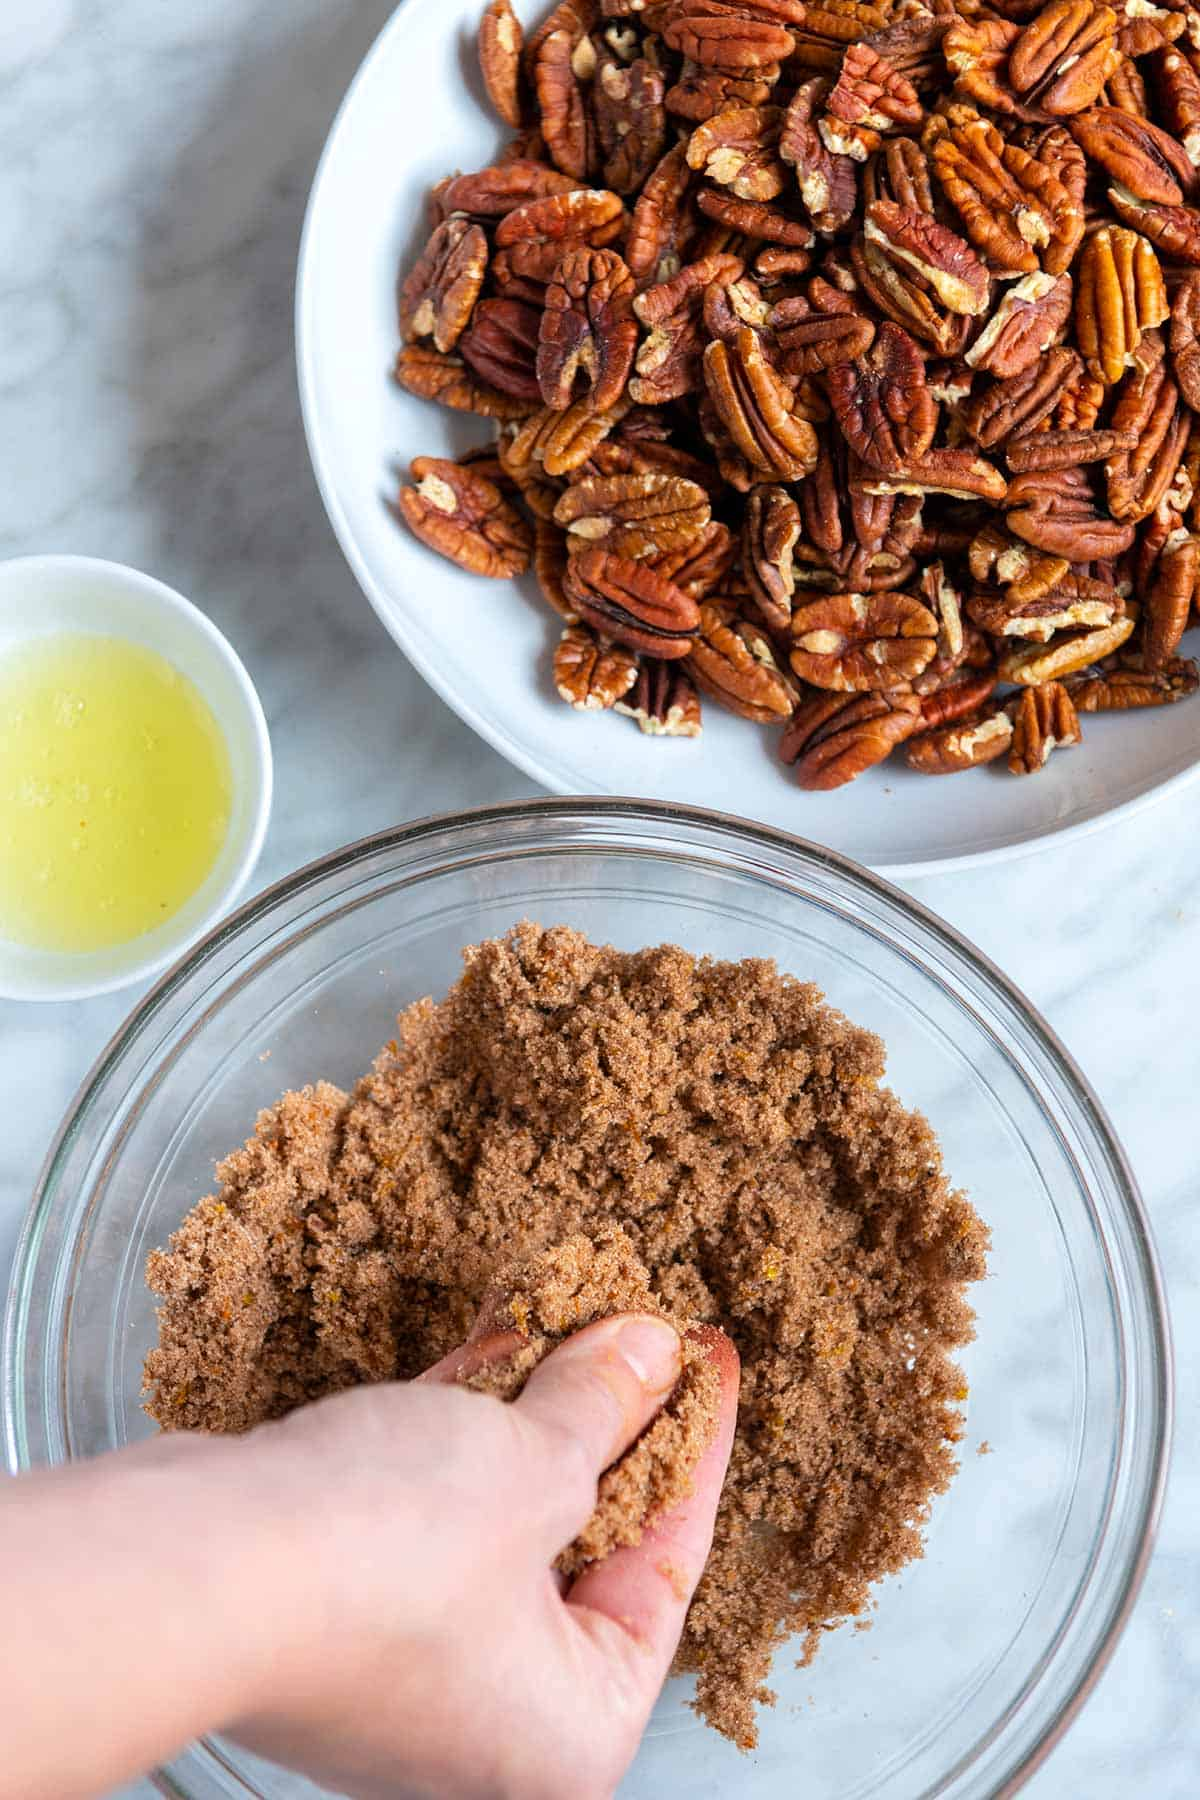 Making candied pecans